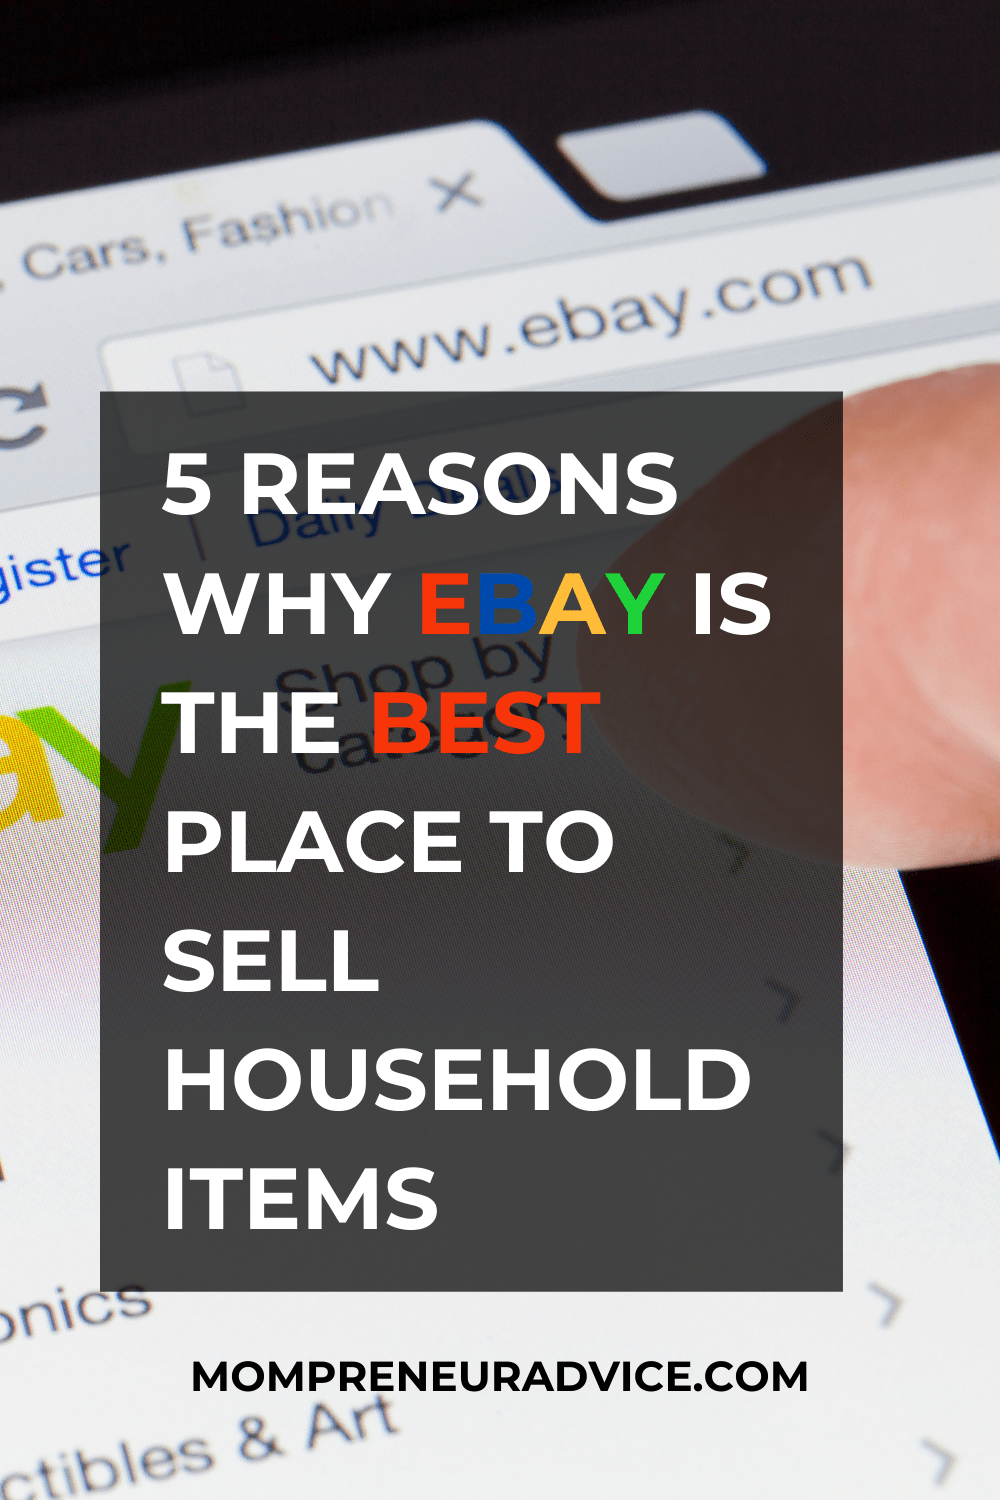 5 reasons why ebay is the best place to sell household items - mompreneuradvice.com